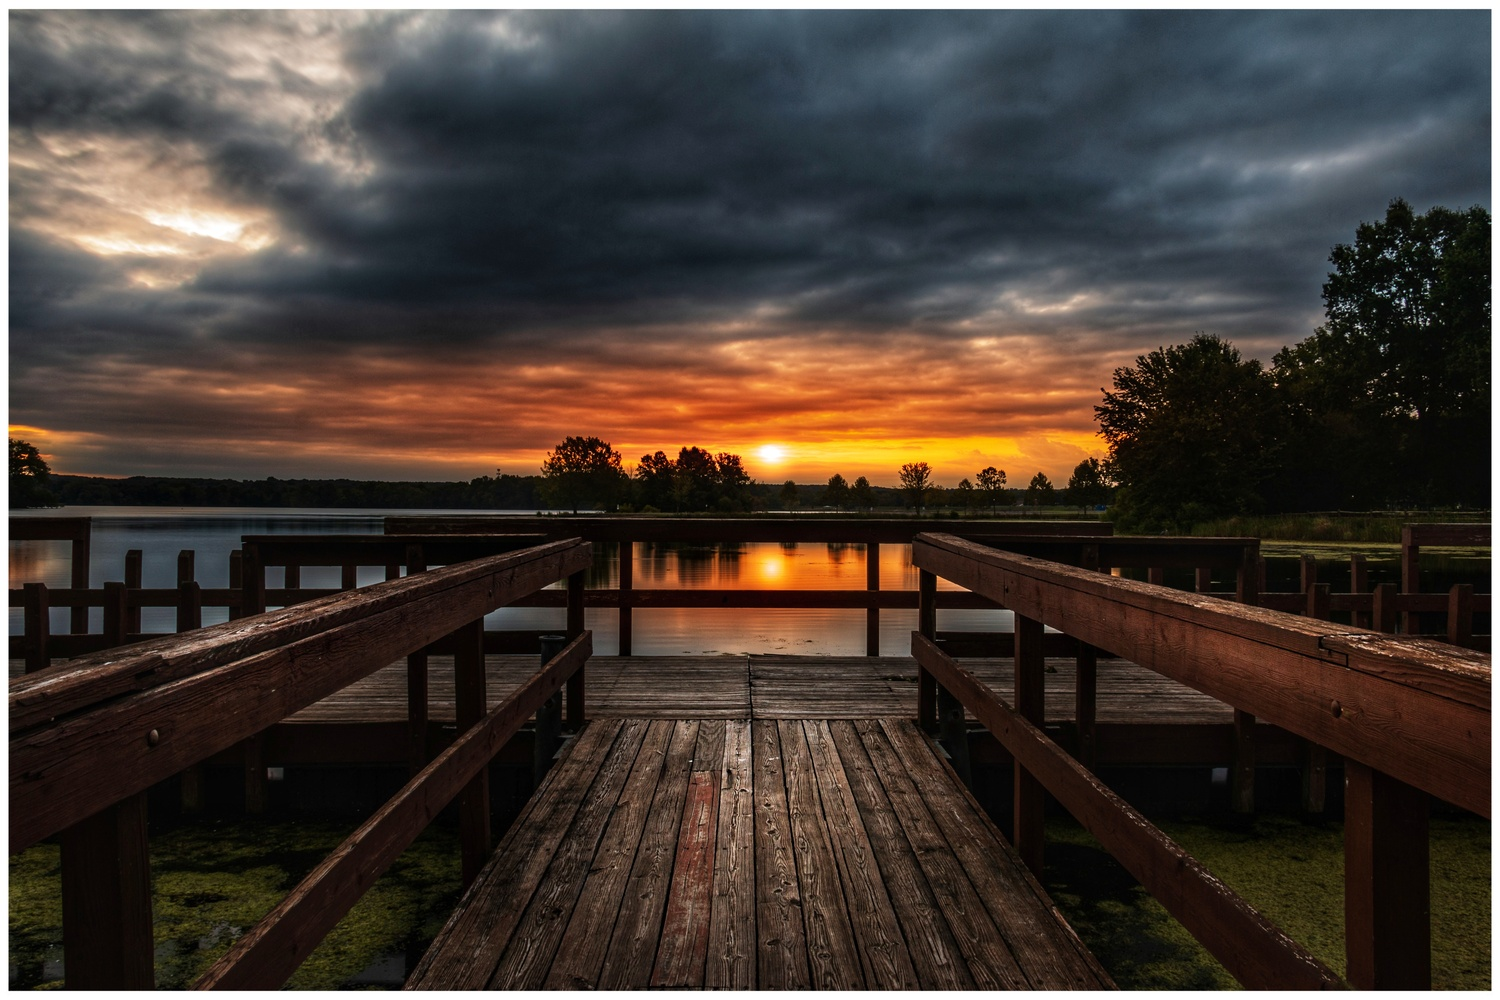 Mosquito Lake State Park by Daniel Frost